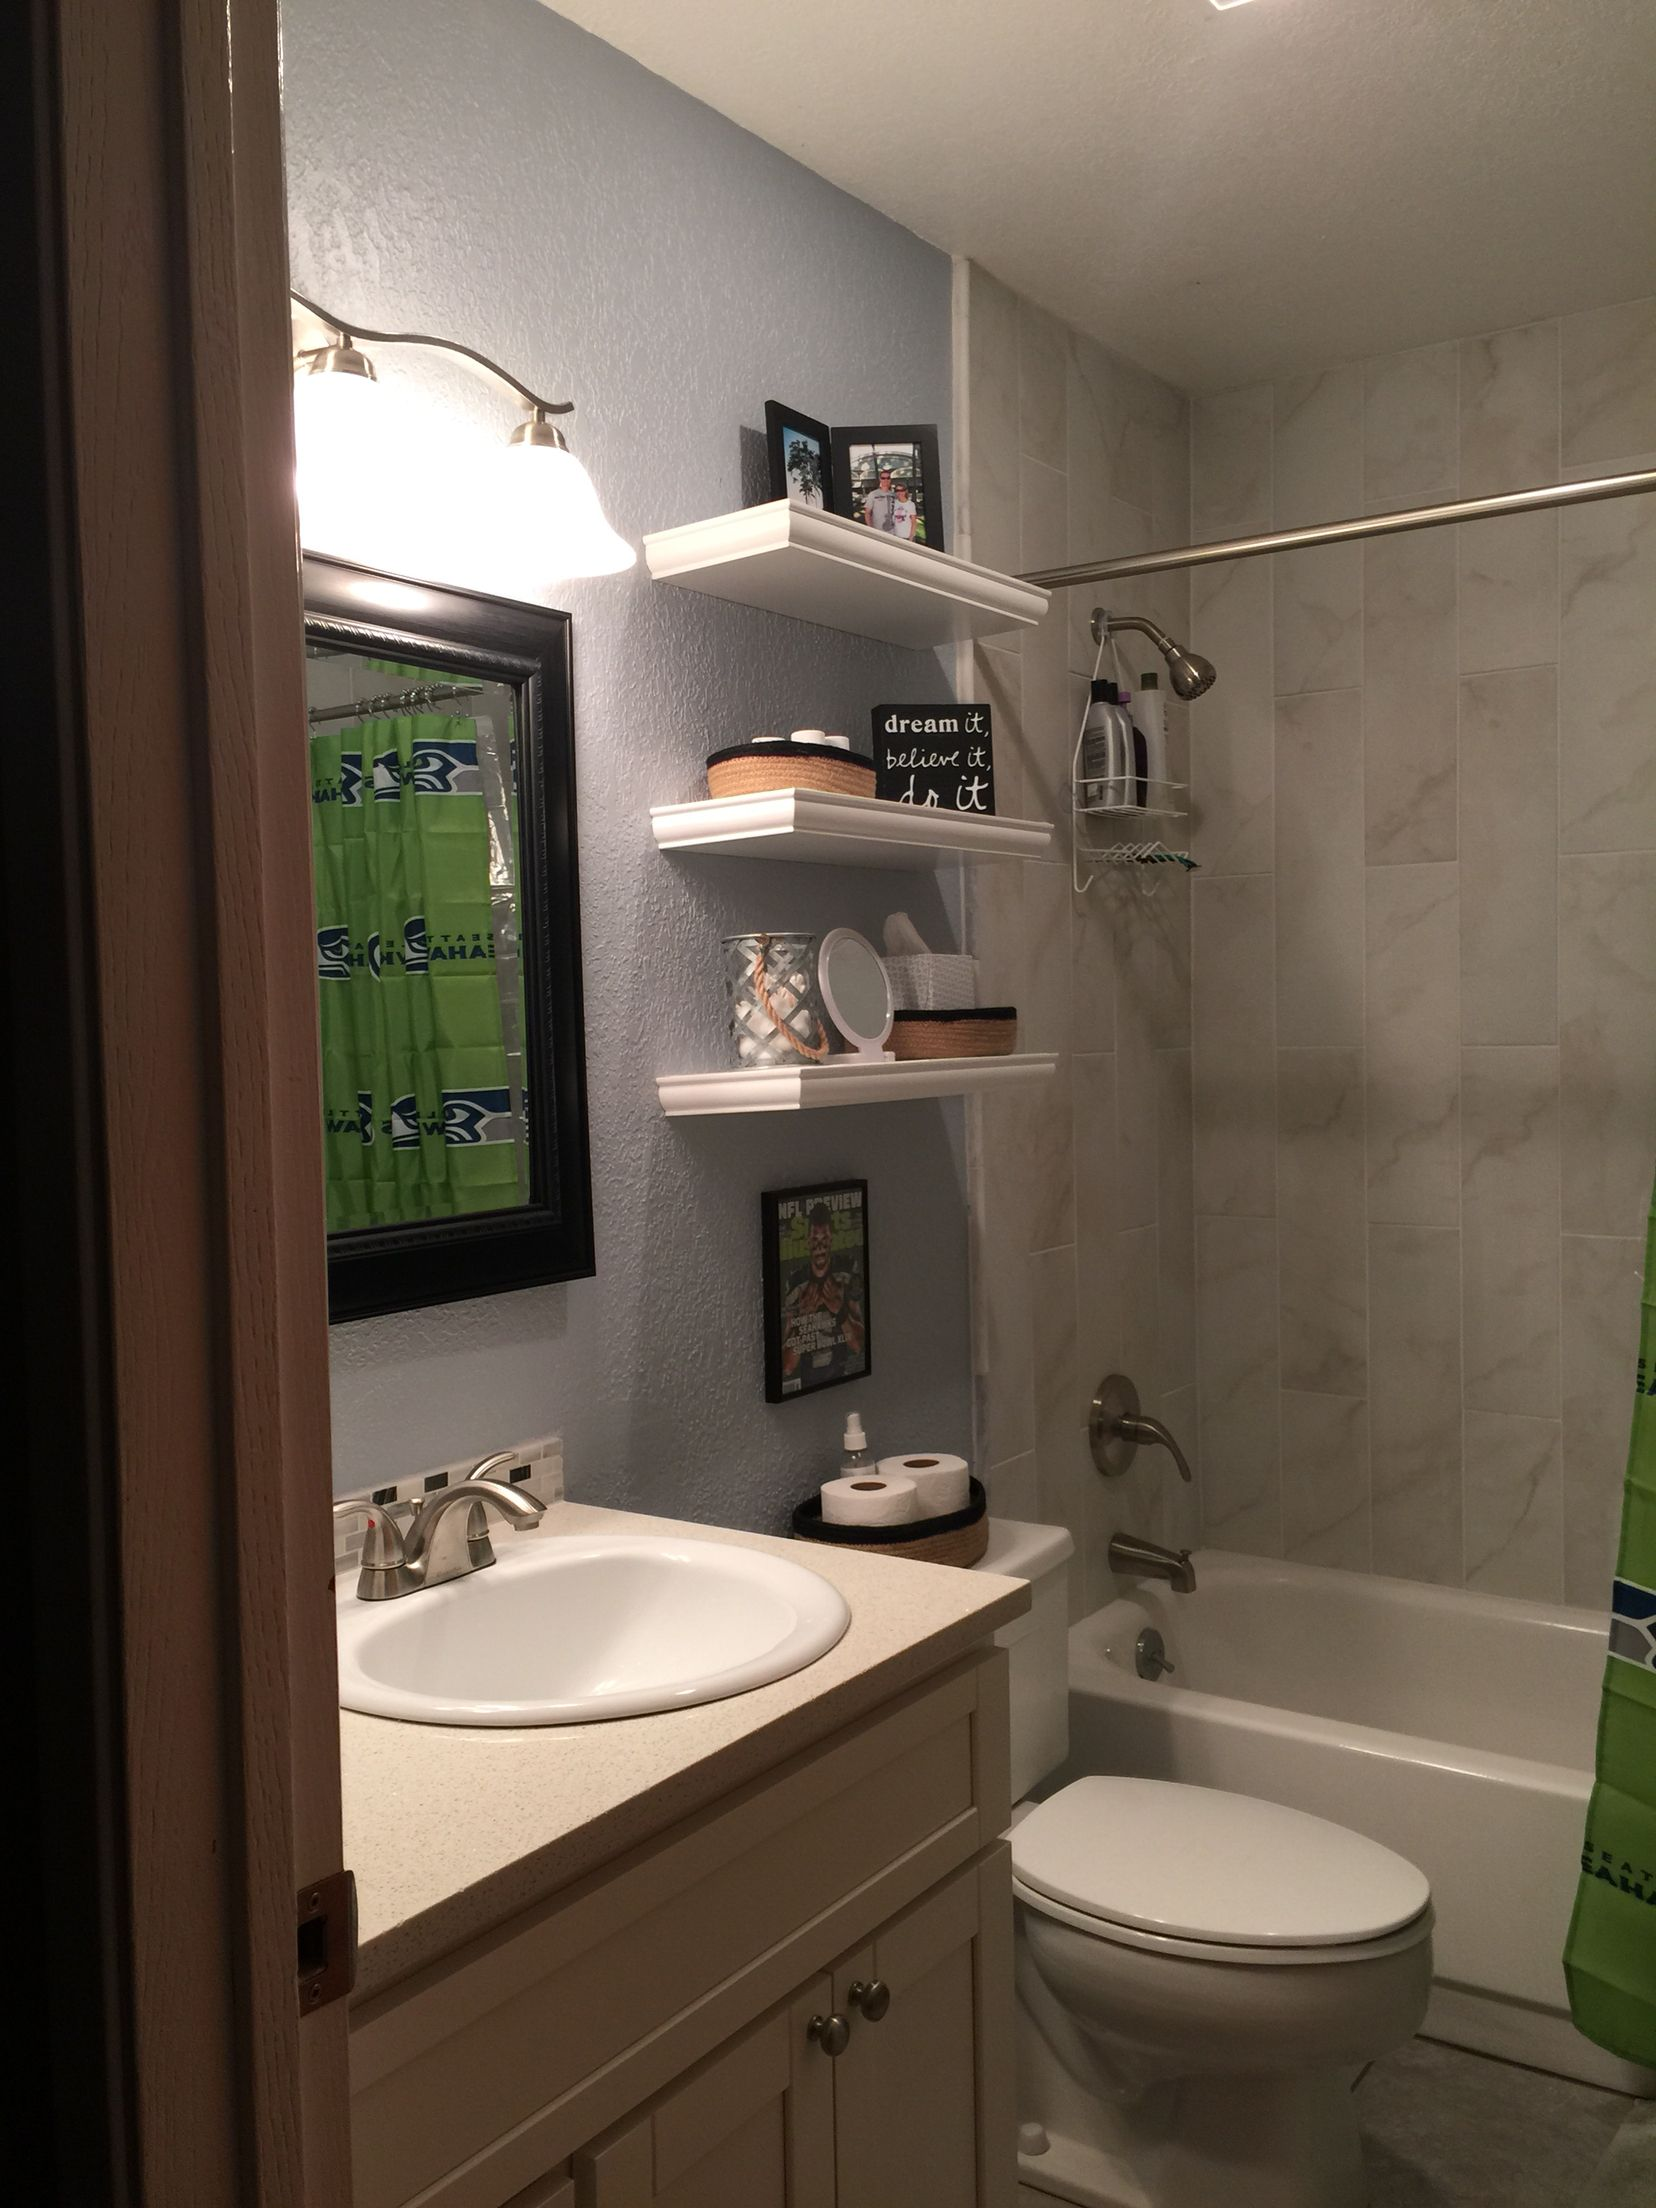 Got some of my ideas from Pinterest, small bathroom ideas ... on Small Space Small Bathroom Ideas Pinterest id=29612